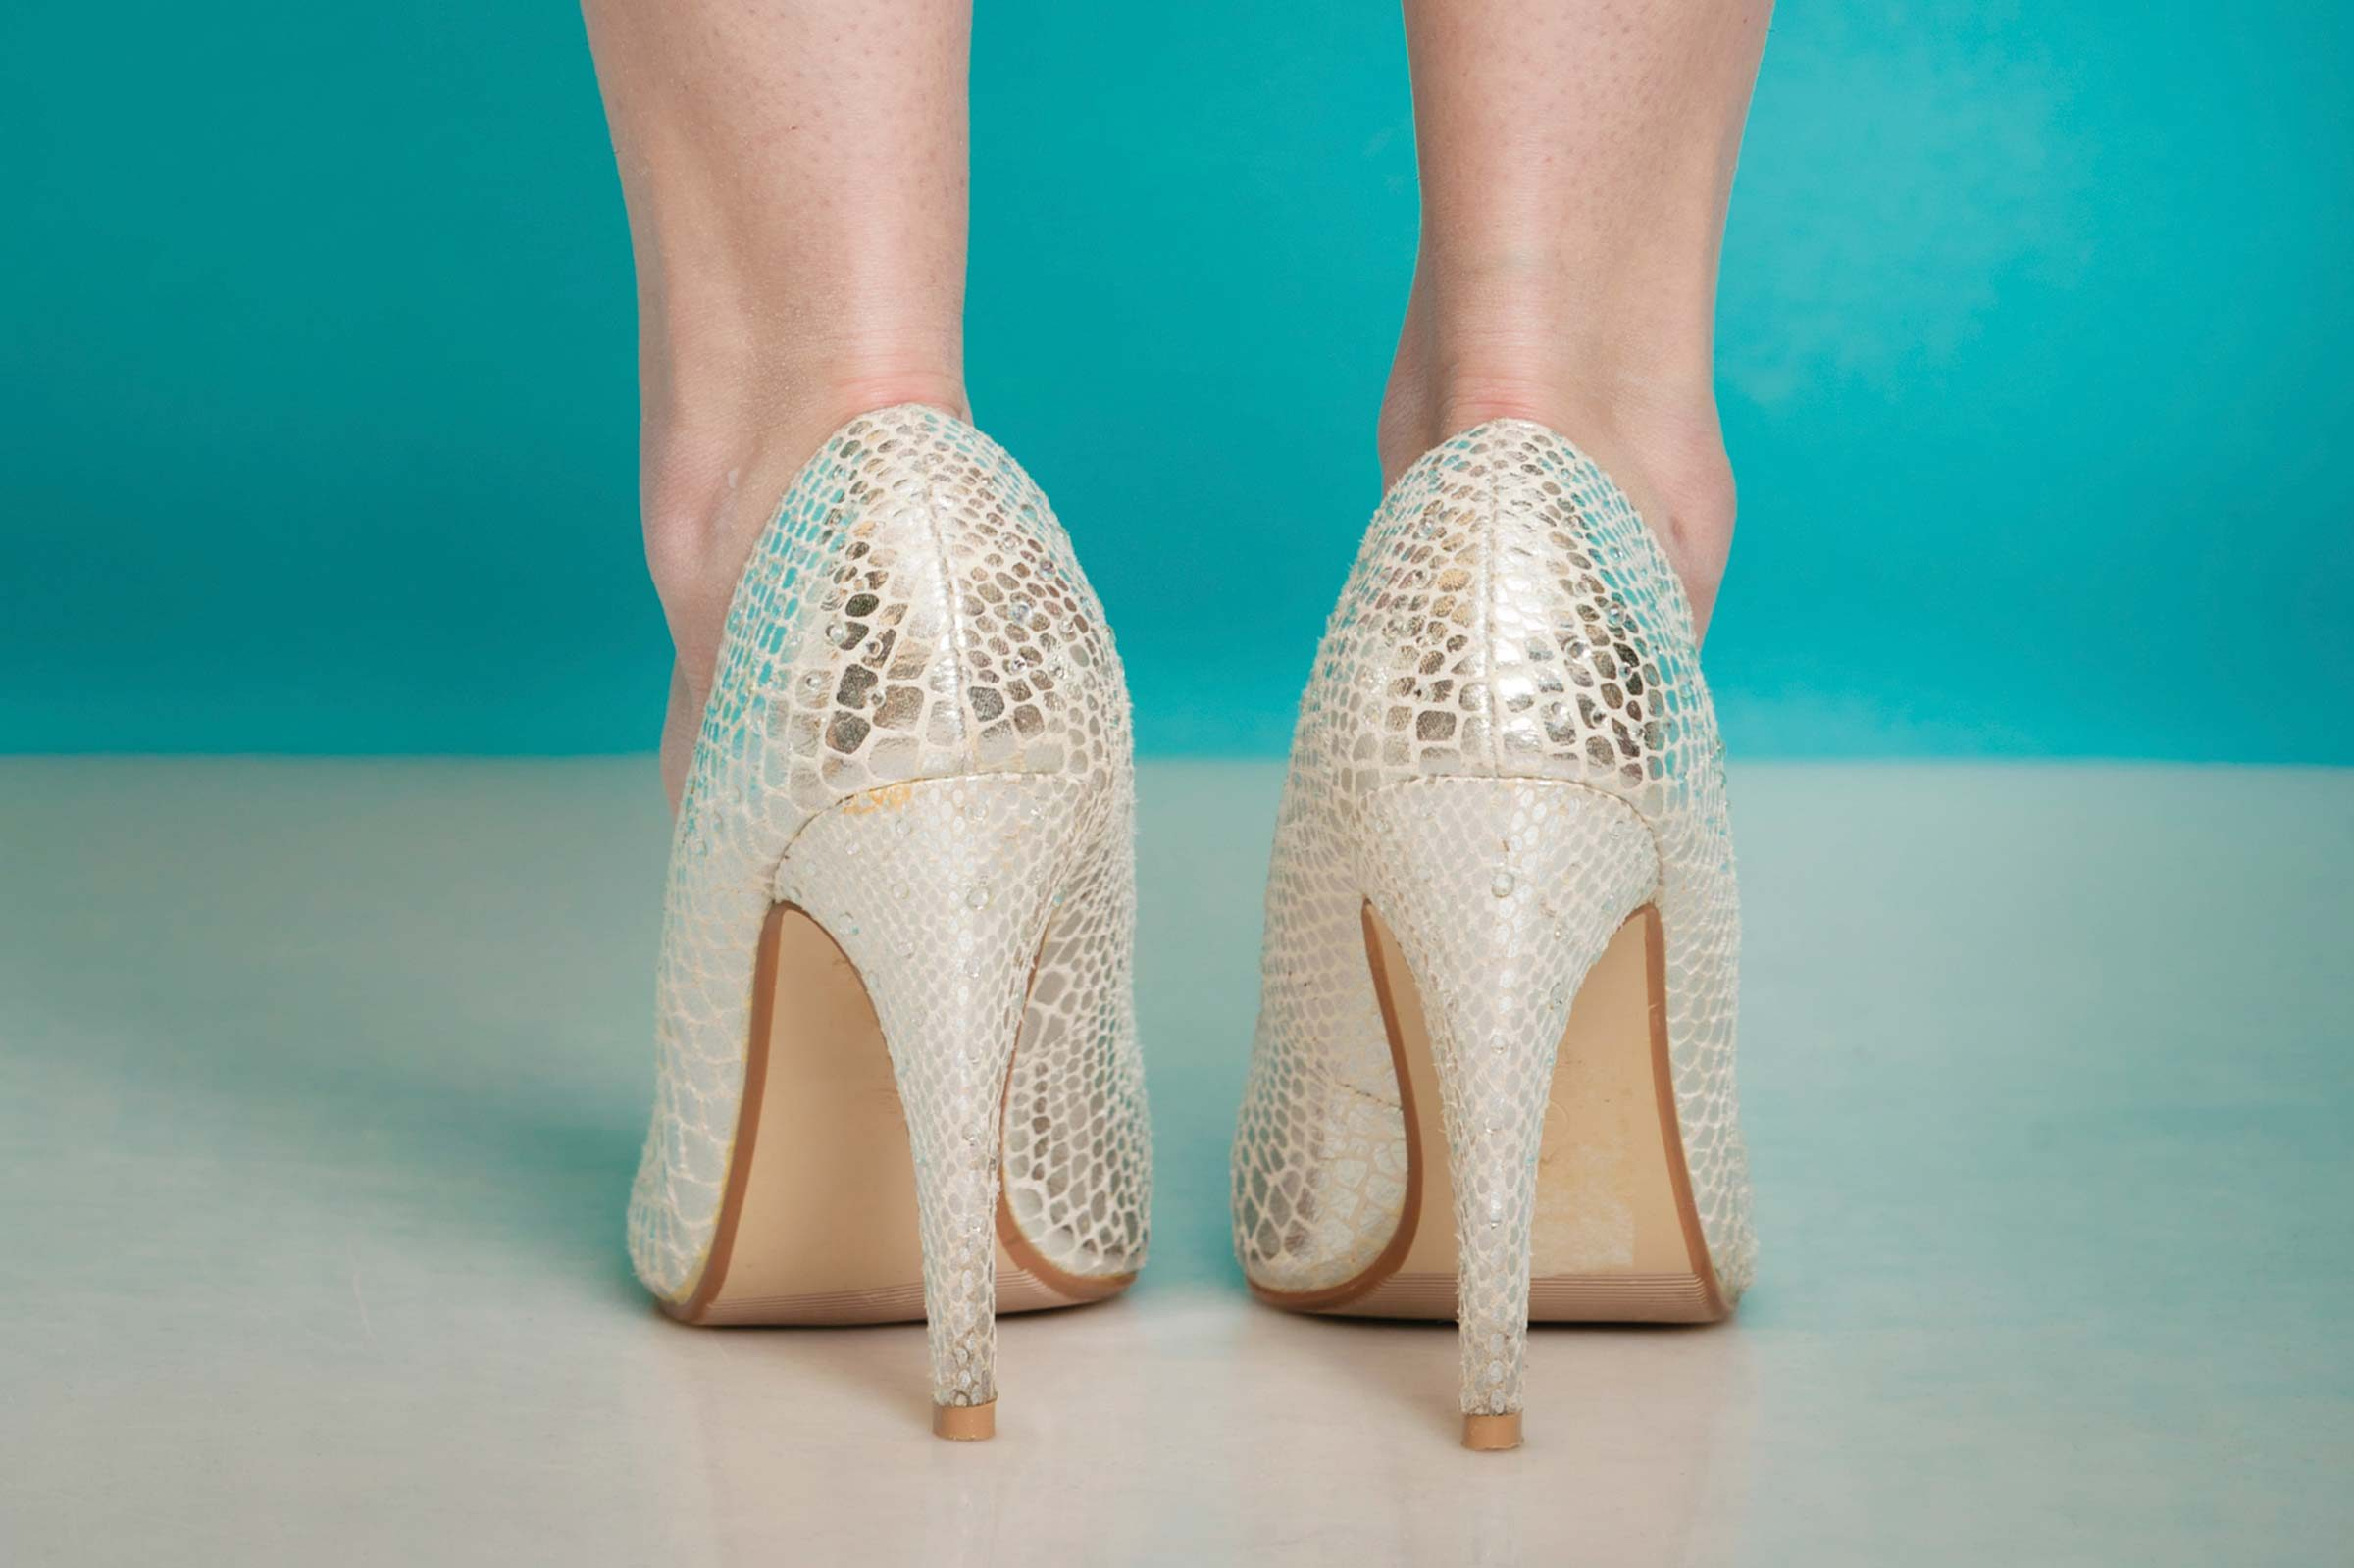 Subtly Sparkly New Years Outfit Ideas | Reader\'s Digest